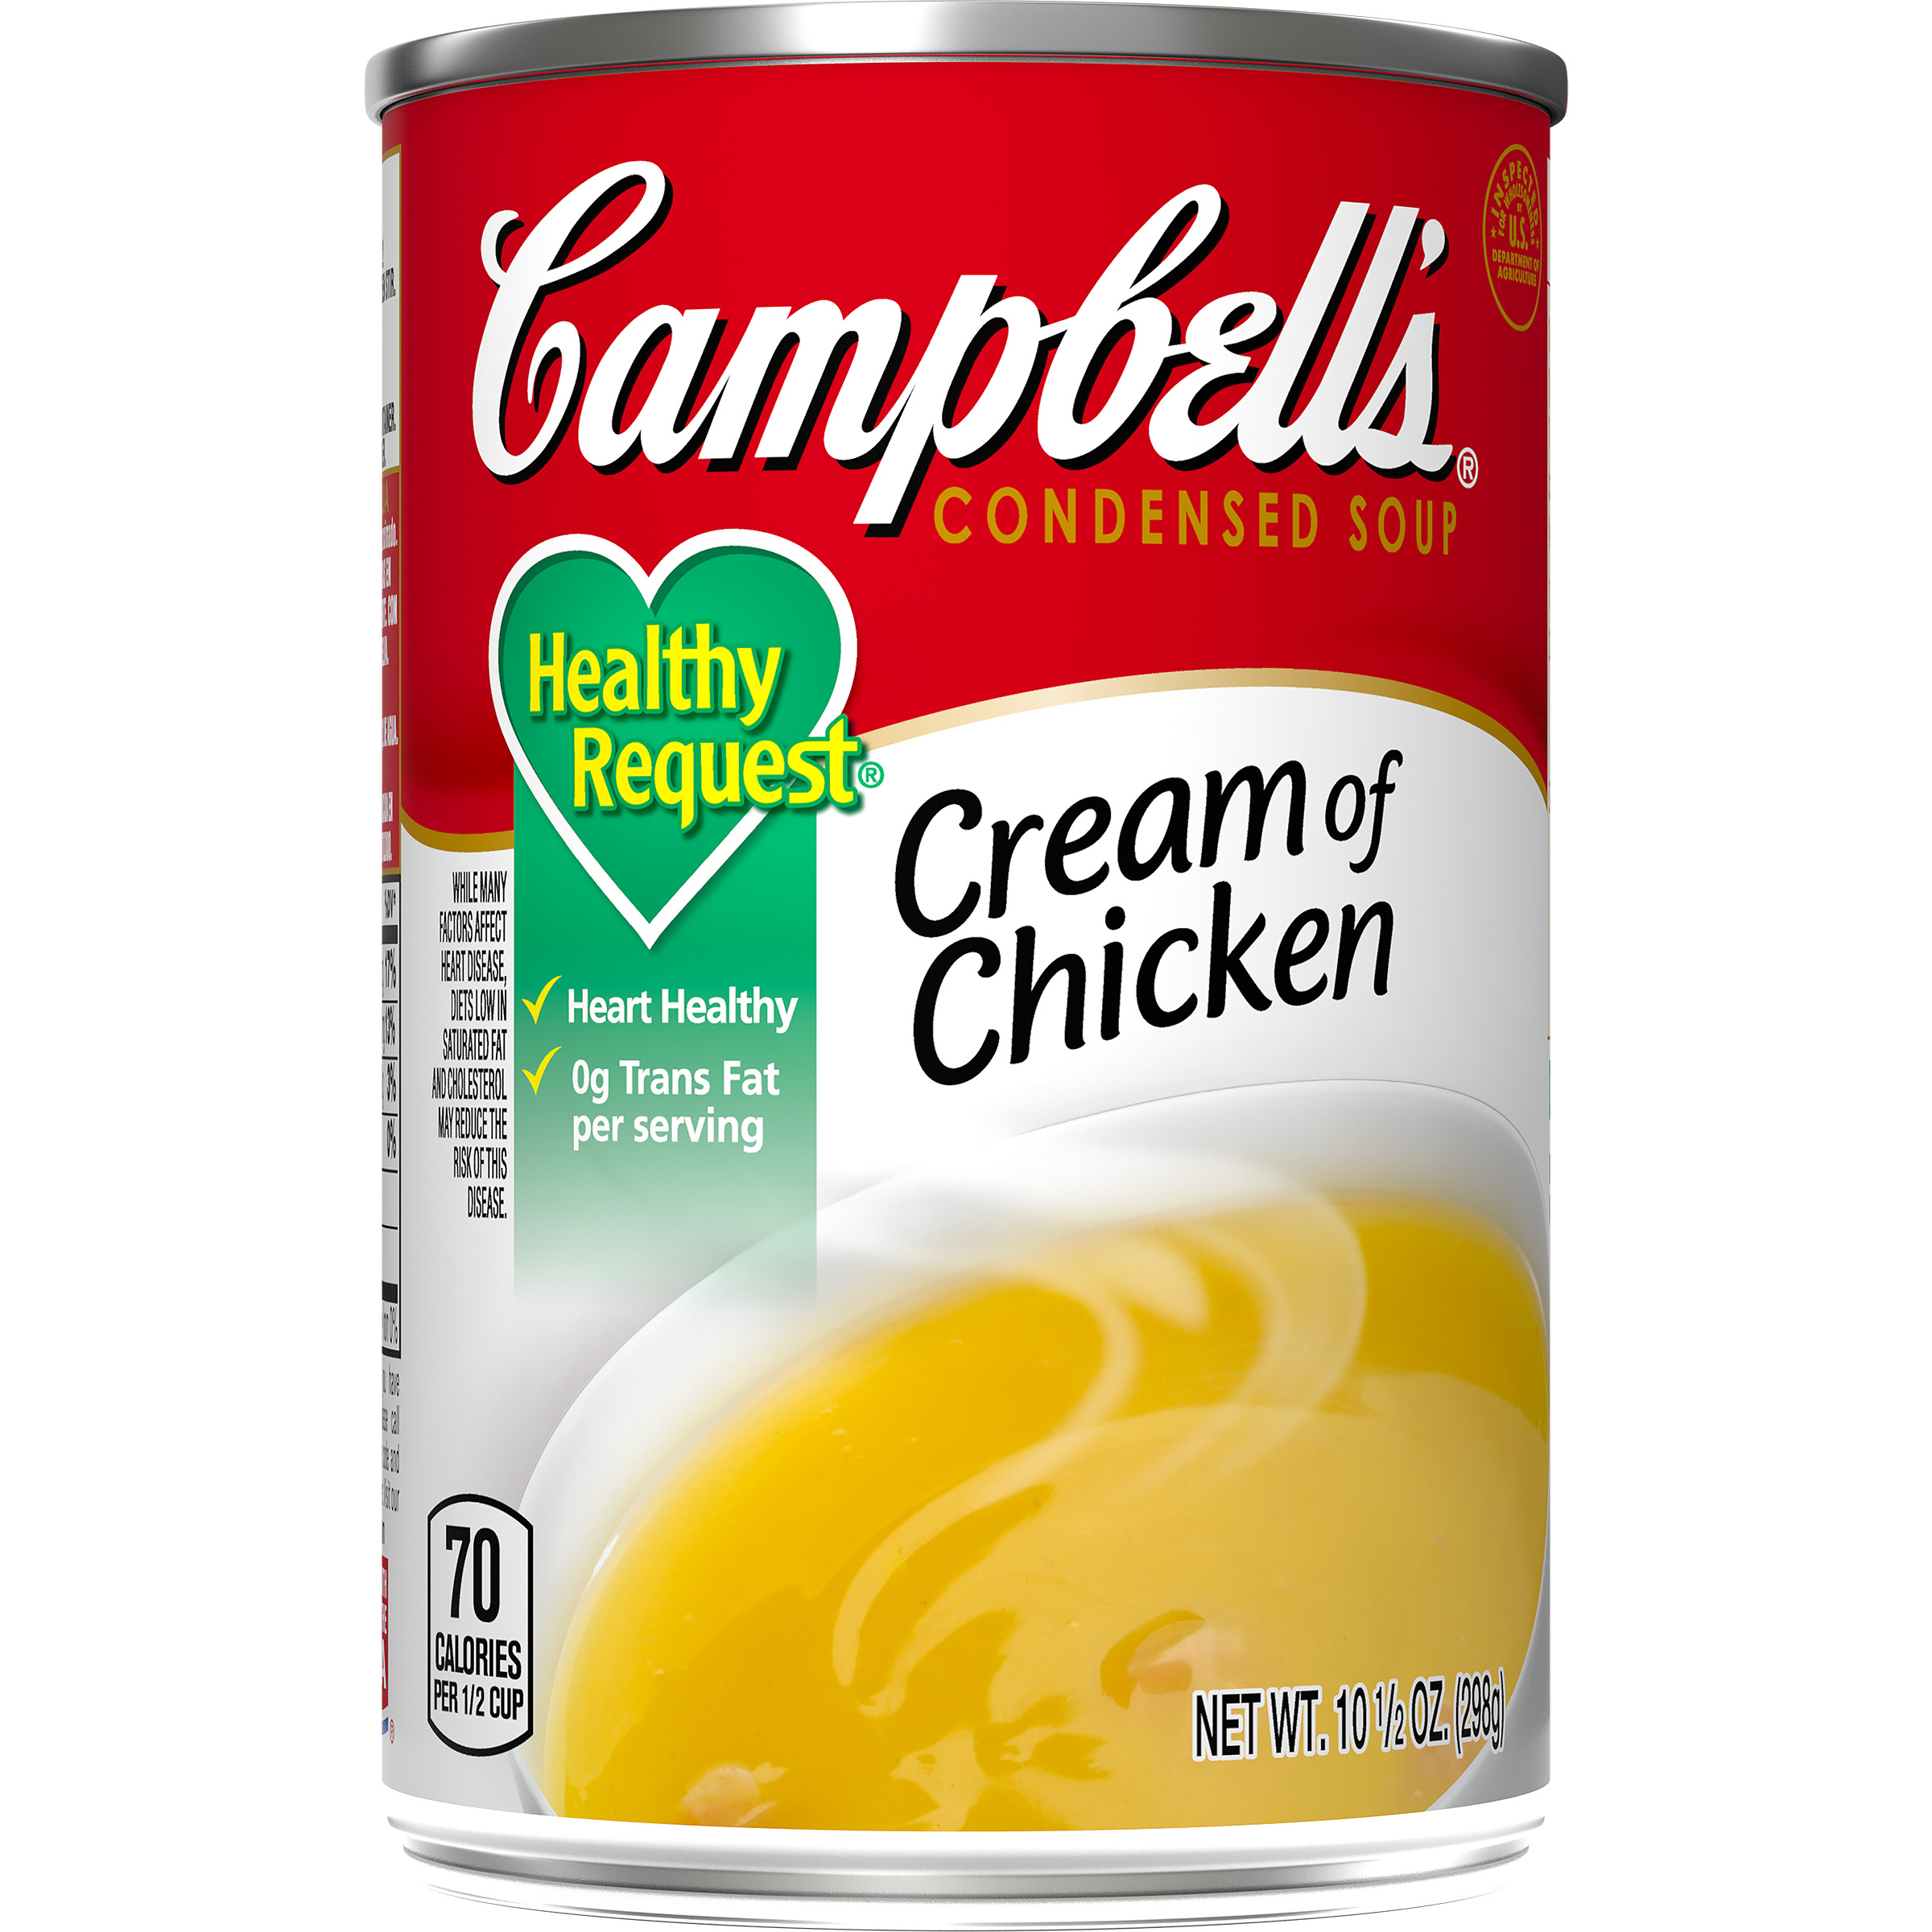 How many grams per can of condensed milk? Classification, benefit and harm of a product 91